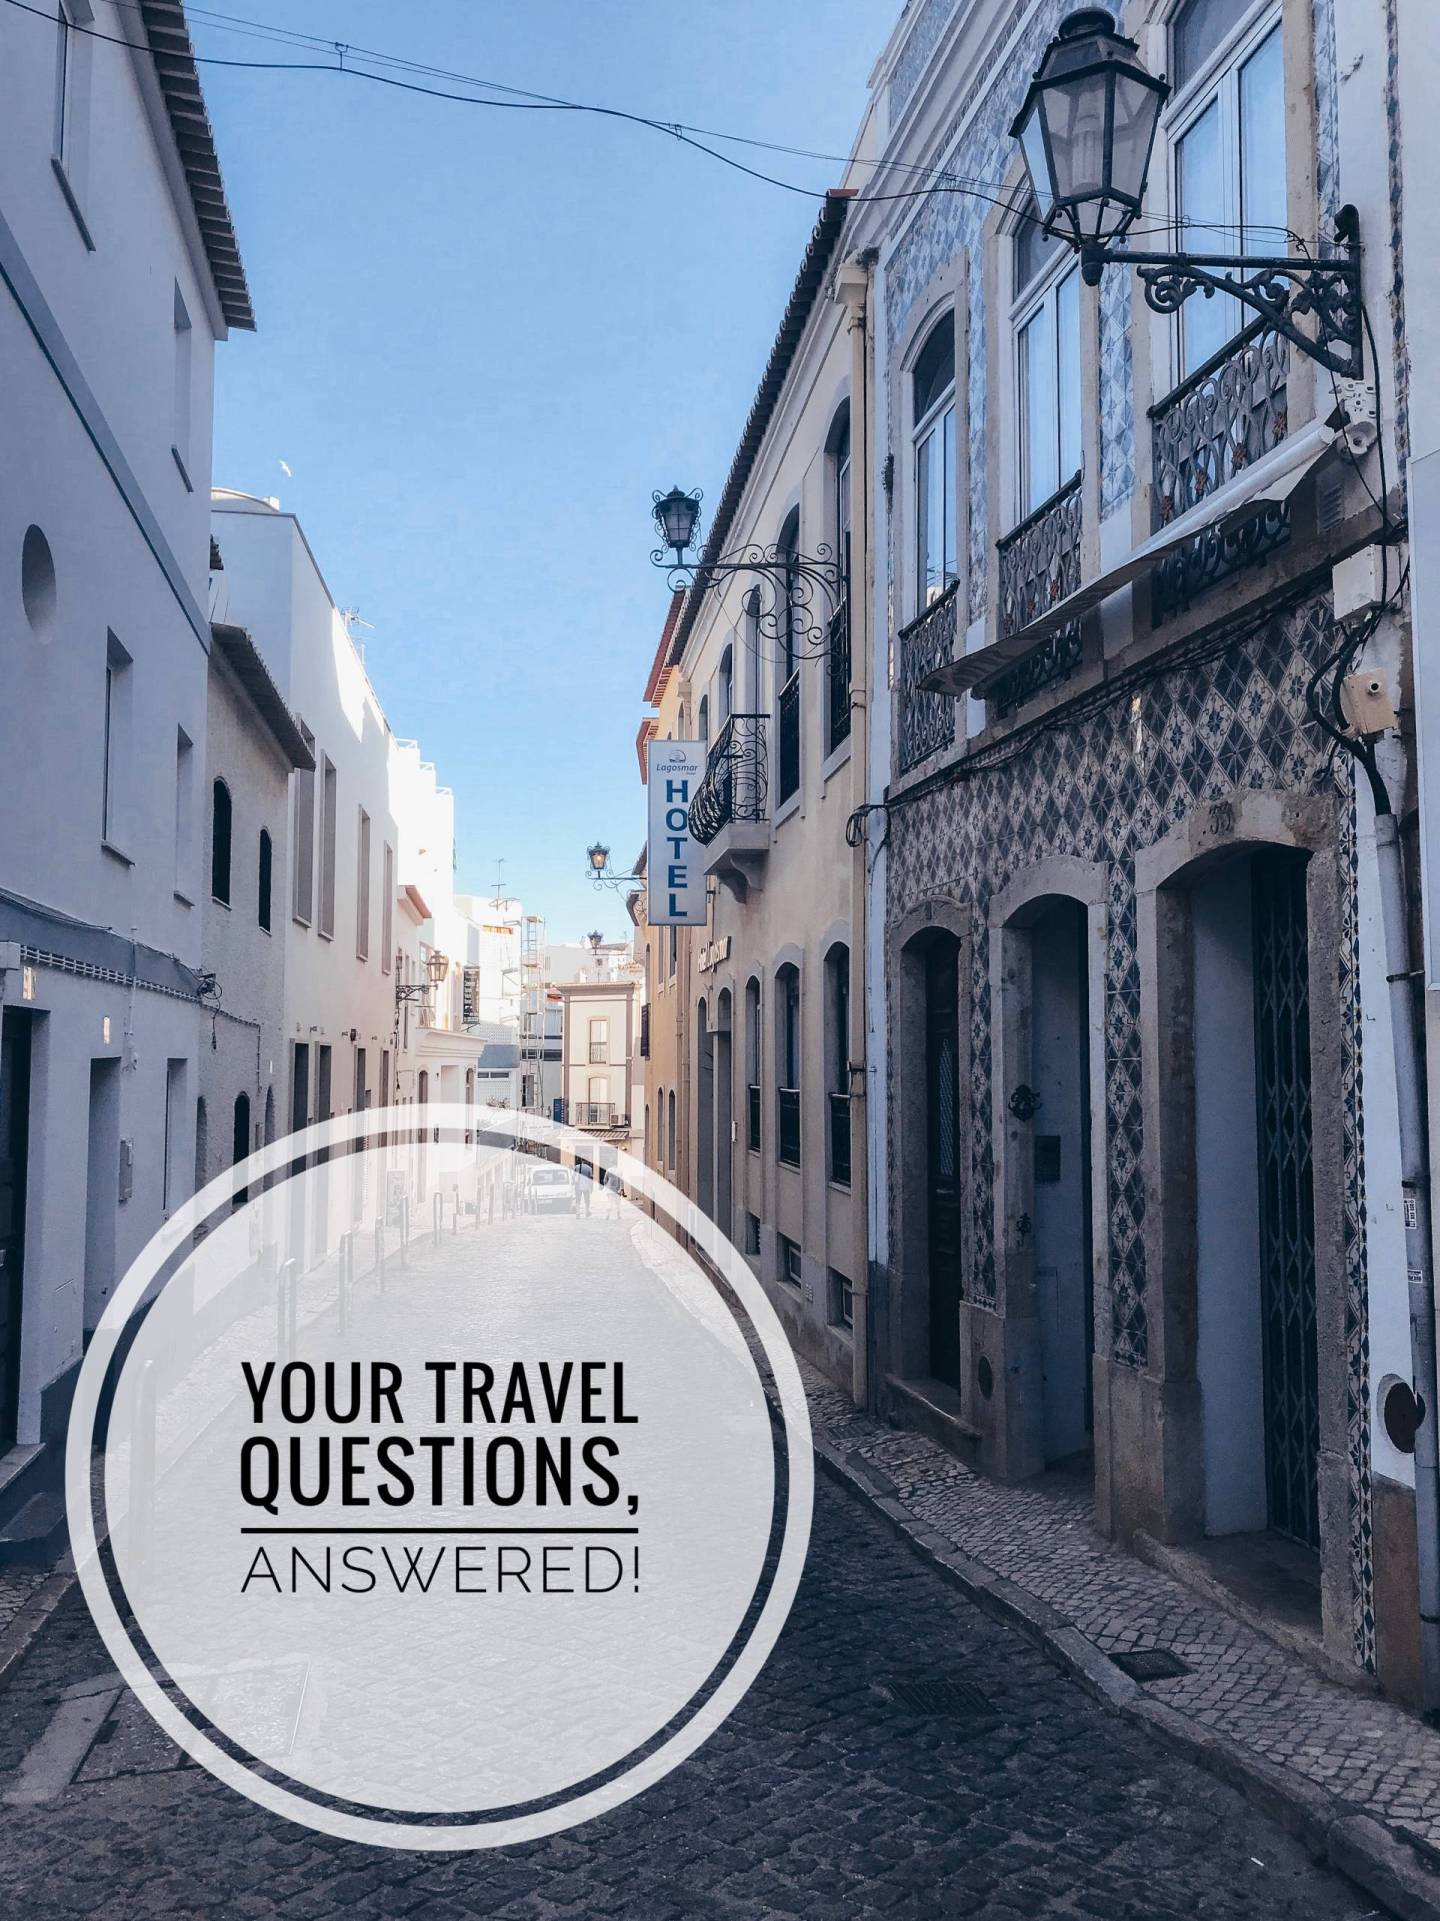 Travel blogger Mary-Katherine of Gold-Hatted Lover answers your travel questions, including favorite destinations, best luggage, how to pack without going over the weight limit, and more!